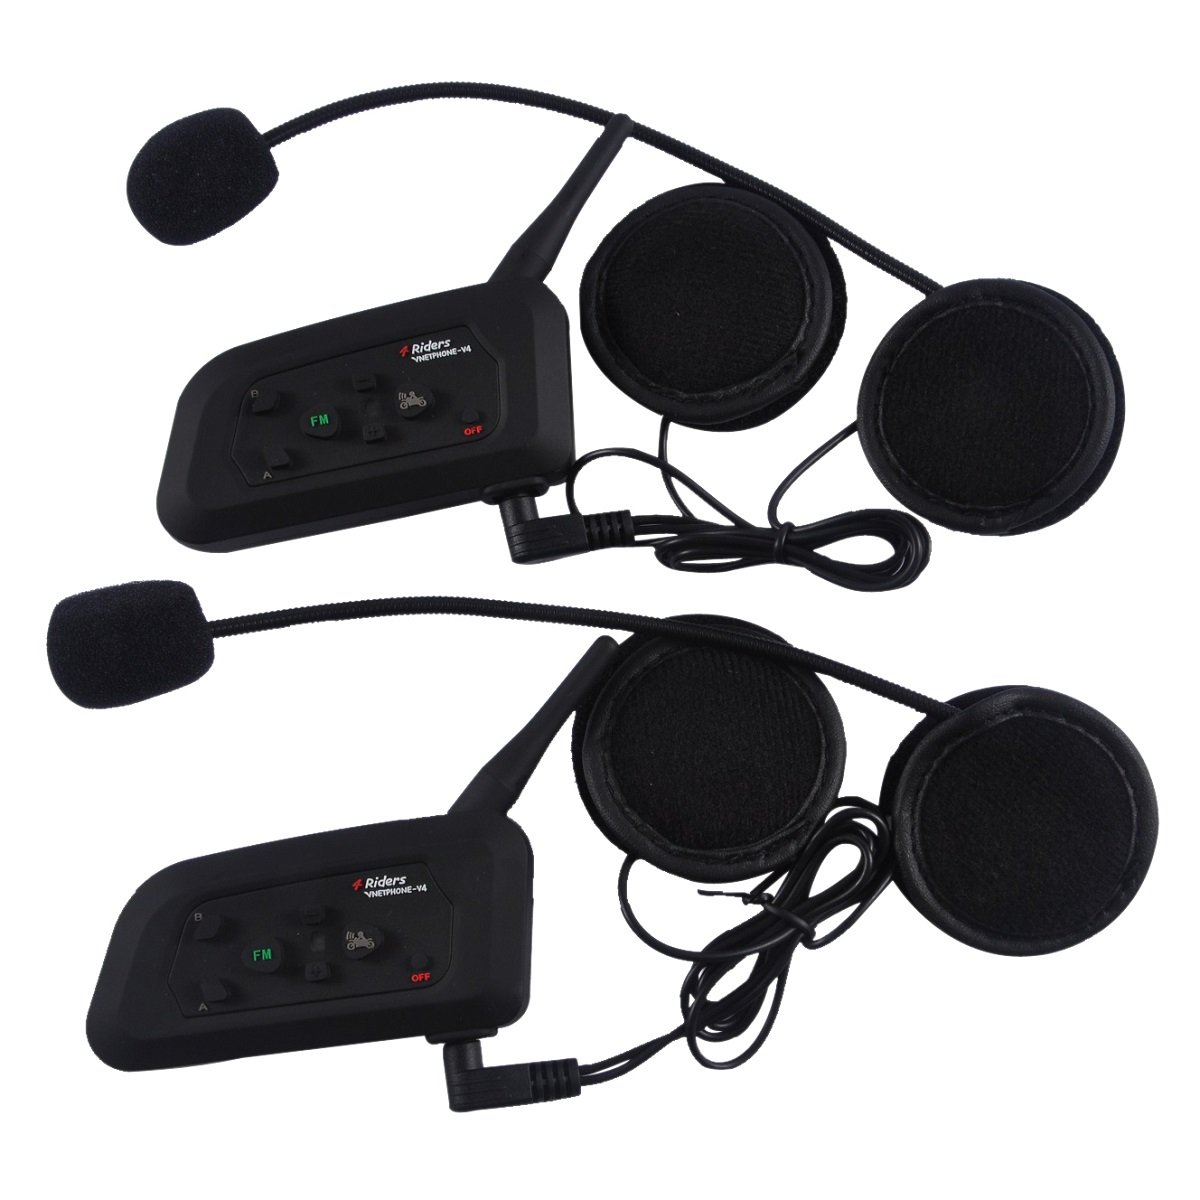 2 PCS Vnetphone-V4 BT 3.0 Bluetooth Intercom Motorcycle Helmet Waterproof Interphone Headset 4 Riders 1200M Wireless communication Walkie Talkie Support FM Function